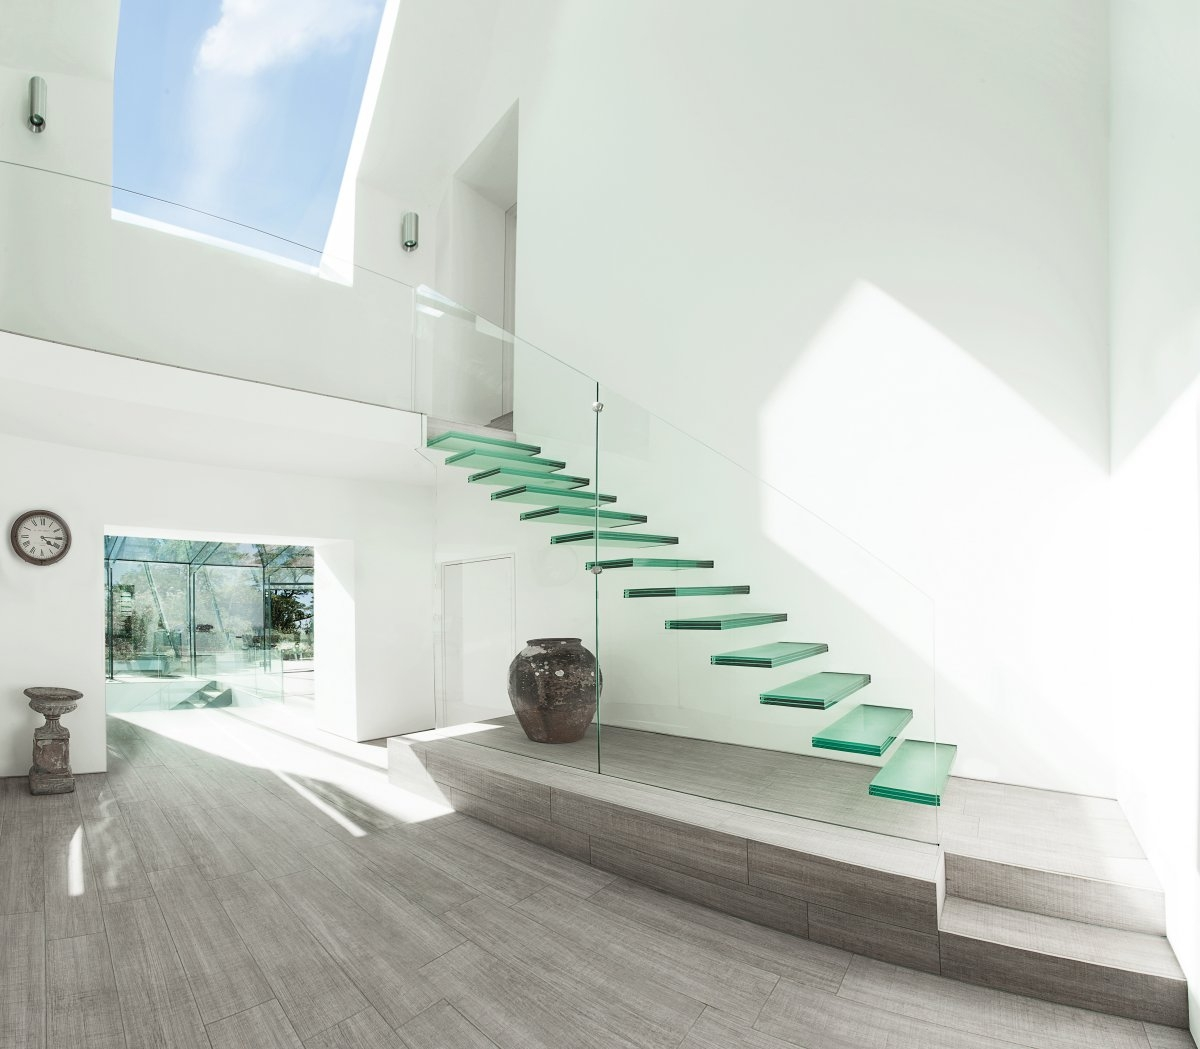 20 Glass Staircase Wall Designs With A Graceful Impact On The | Interior Design Staircase Wall | Luxurious Home | Unique | Beautiful | Fancy | Building Interior